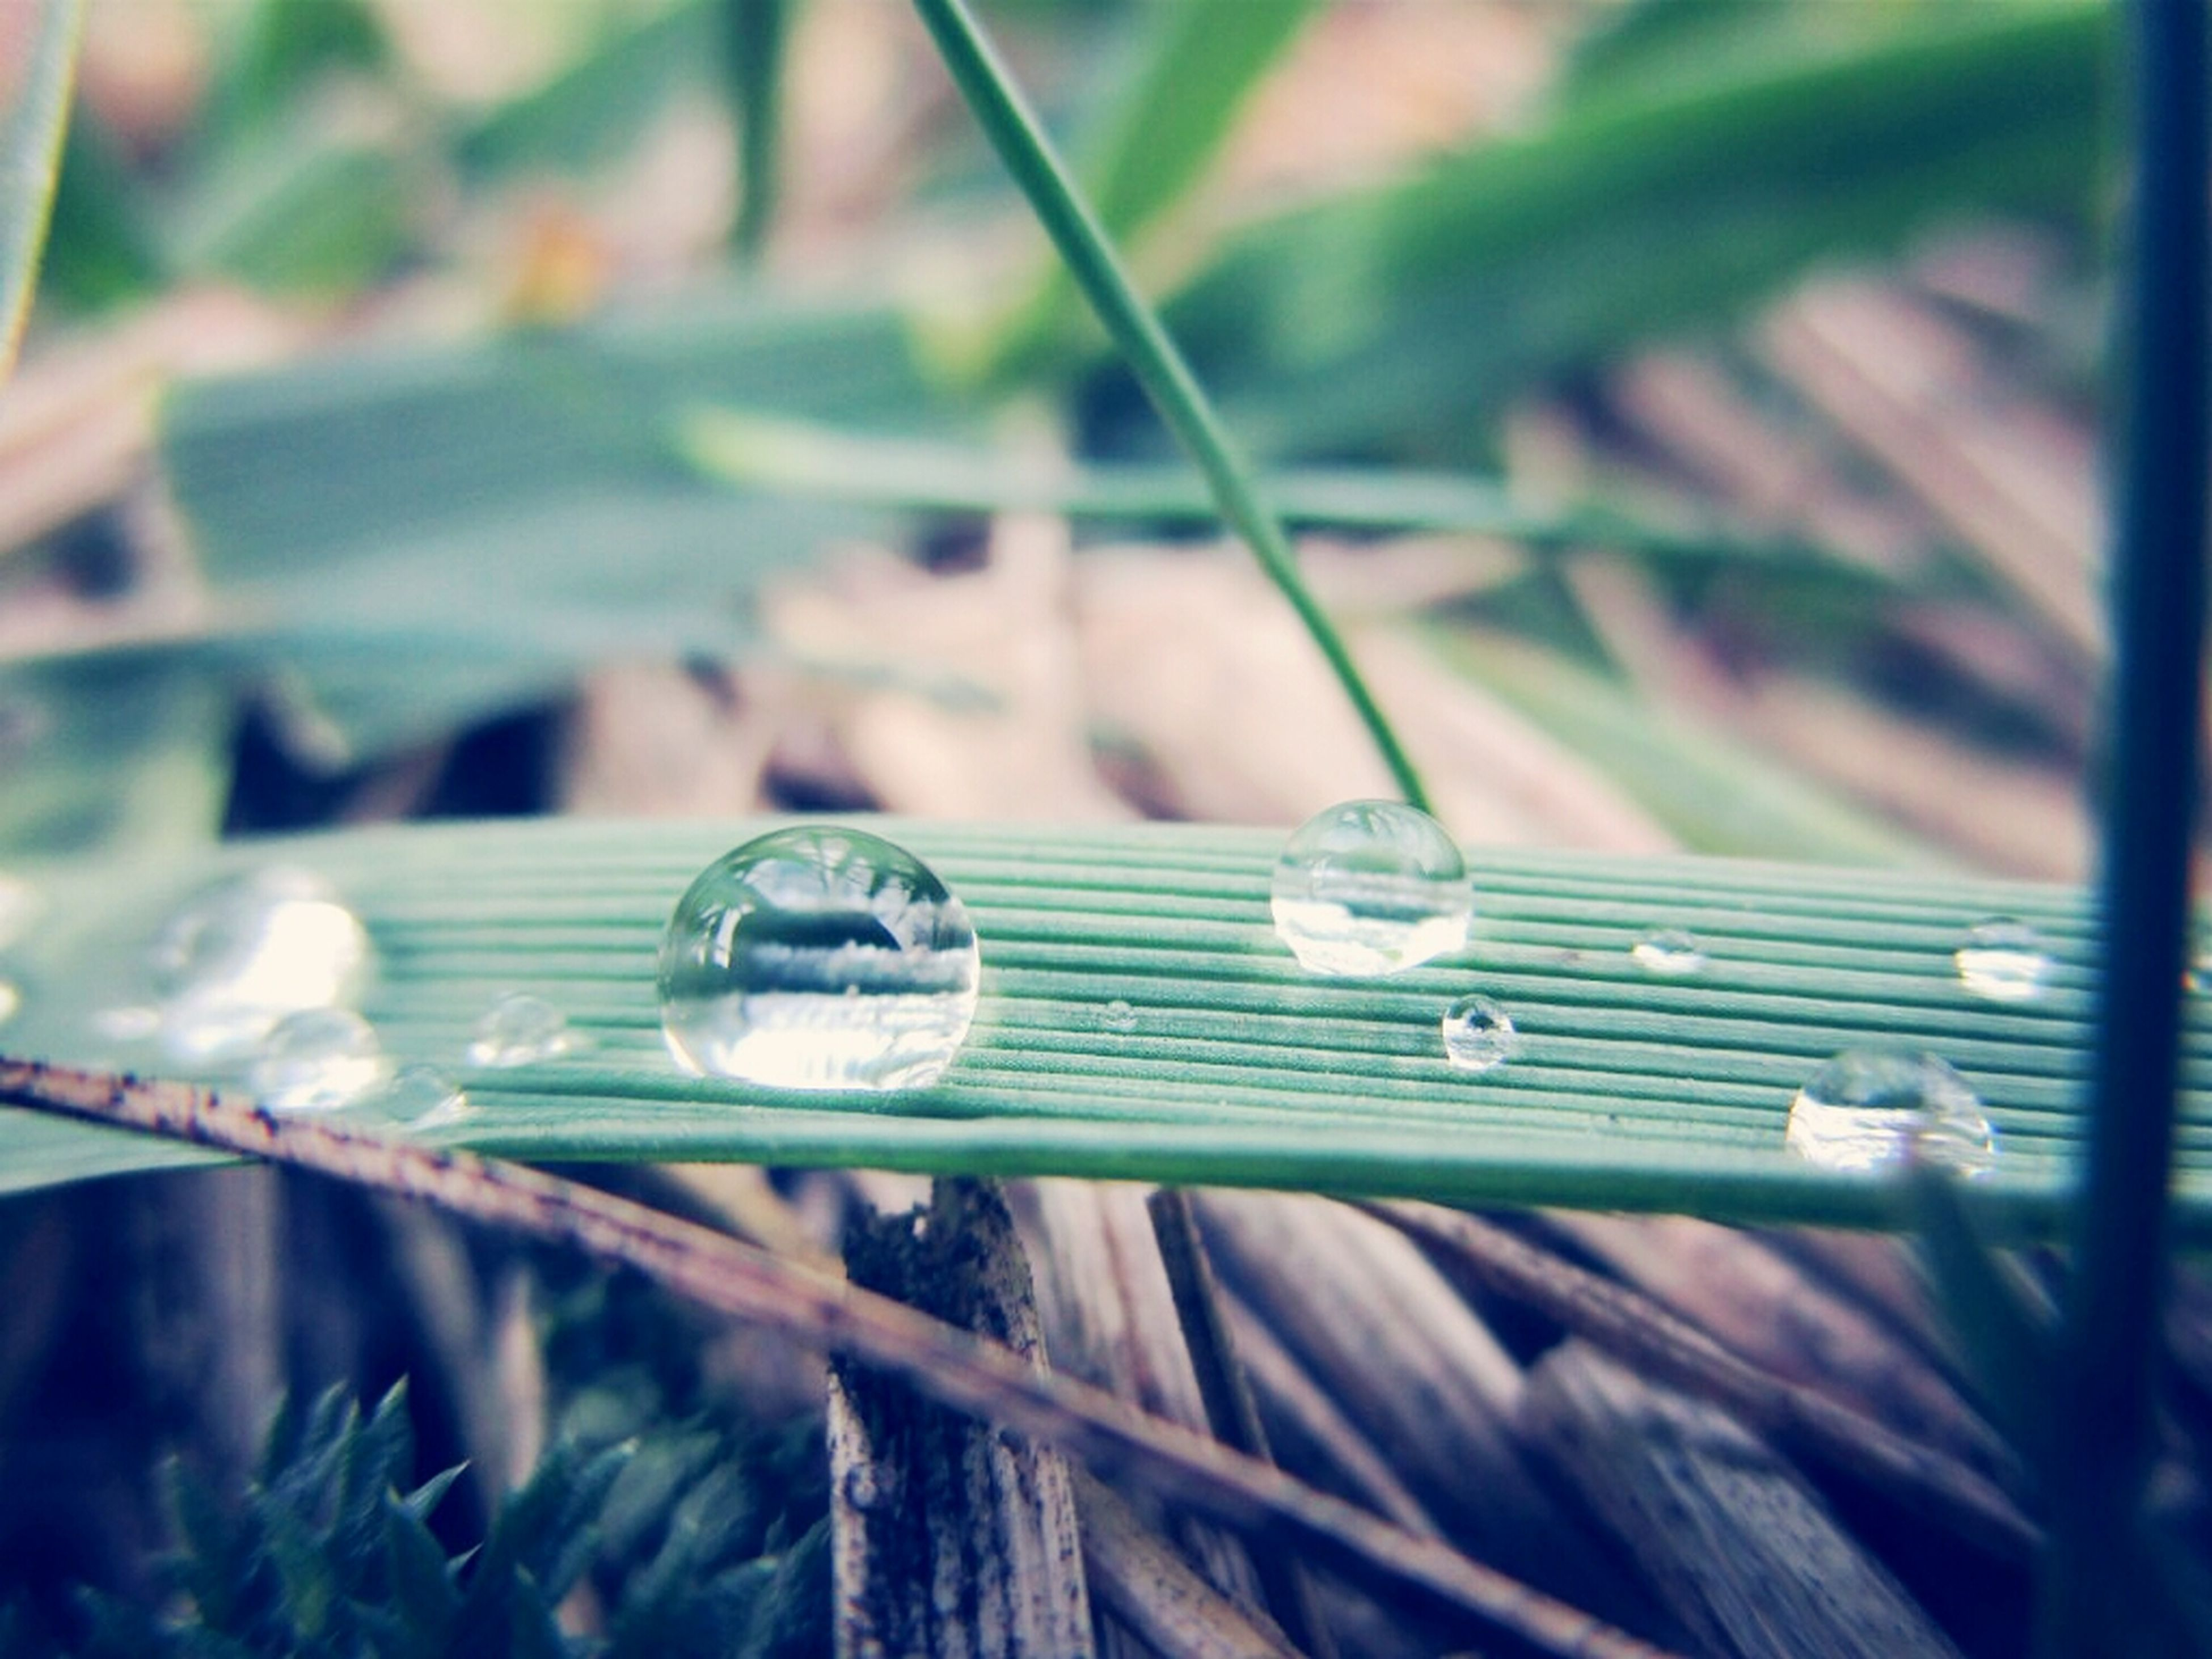 close-up, selective focus, focus on foreground, wood - material, day, green color, no people, outdoors, wooden, metal, nature, insect, rusty, blade of grass, old, water, wood, abandoned, grass, one animal